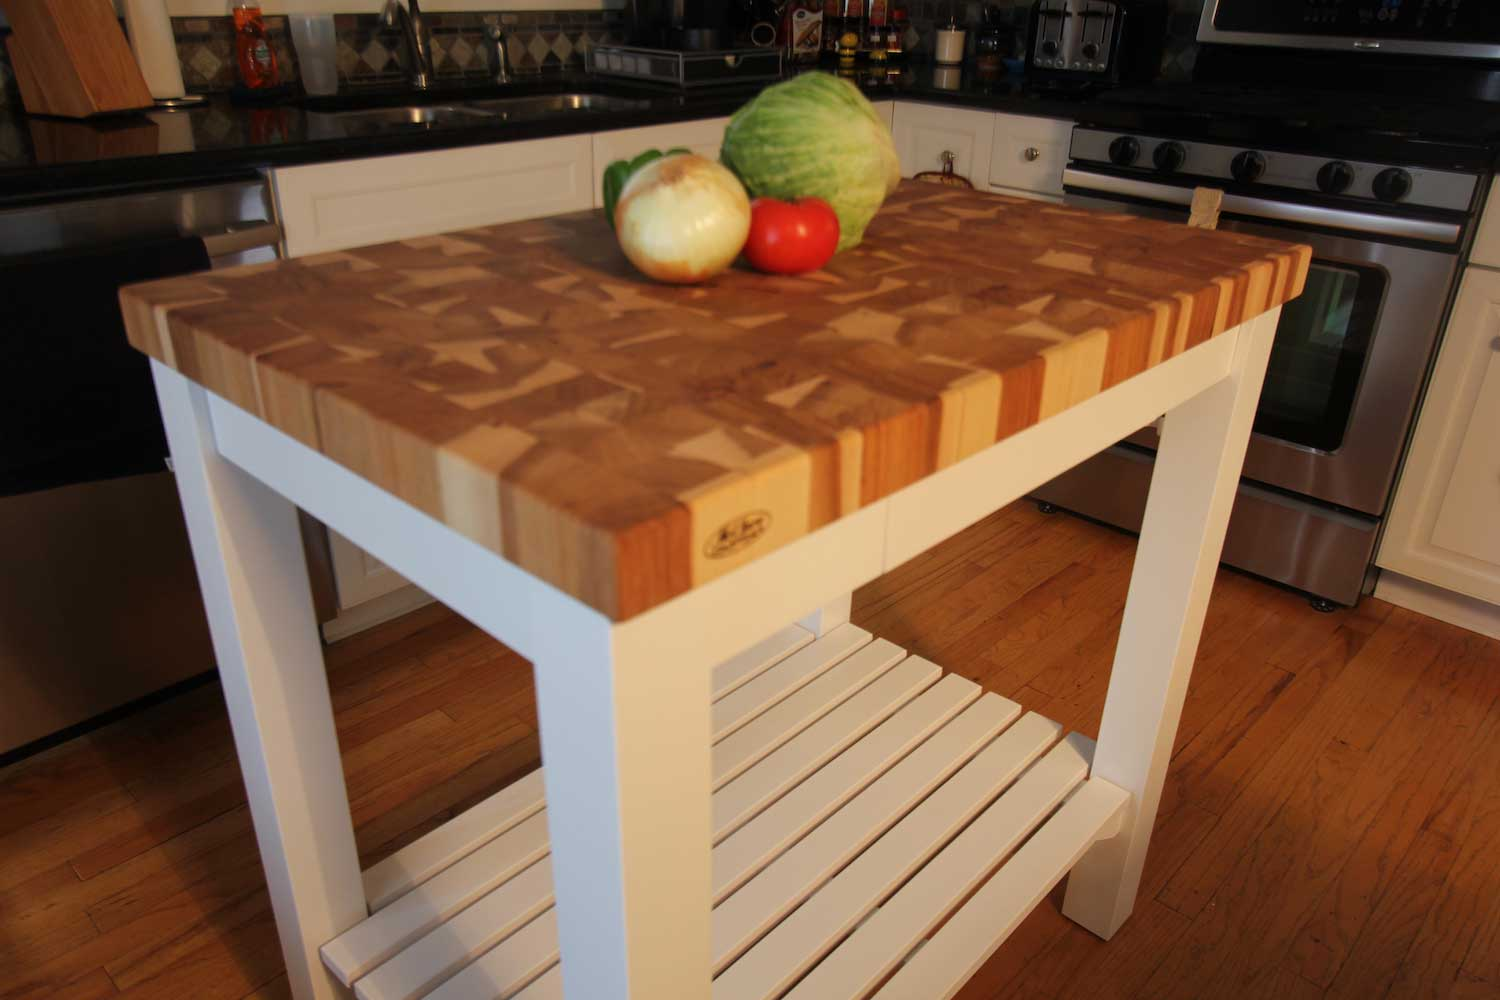 End Grain Butcher Block Kitchen Island : Butcherblock-End-Grain-Hickory-Butcher-Block-Top-Island-Cart - McClure Block Butcher Block and ...